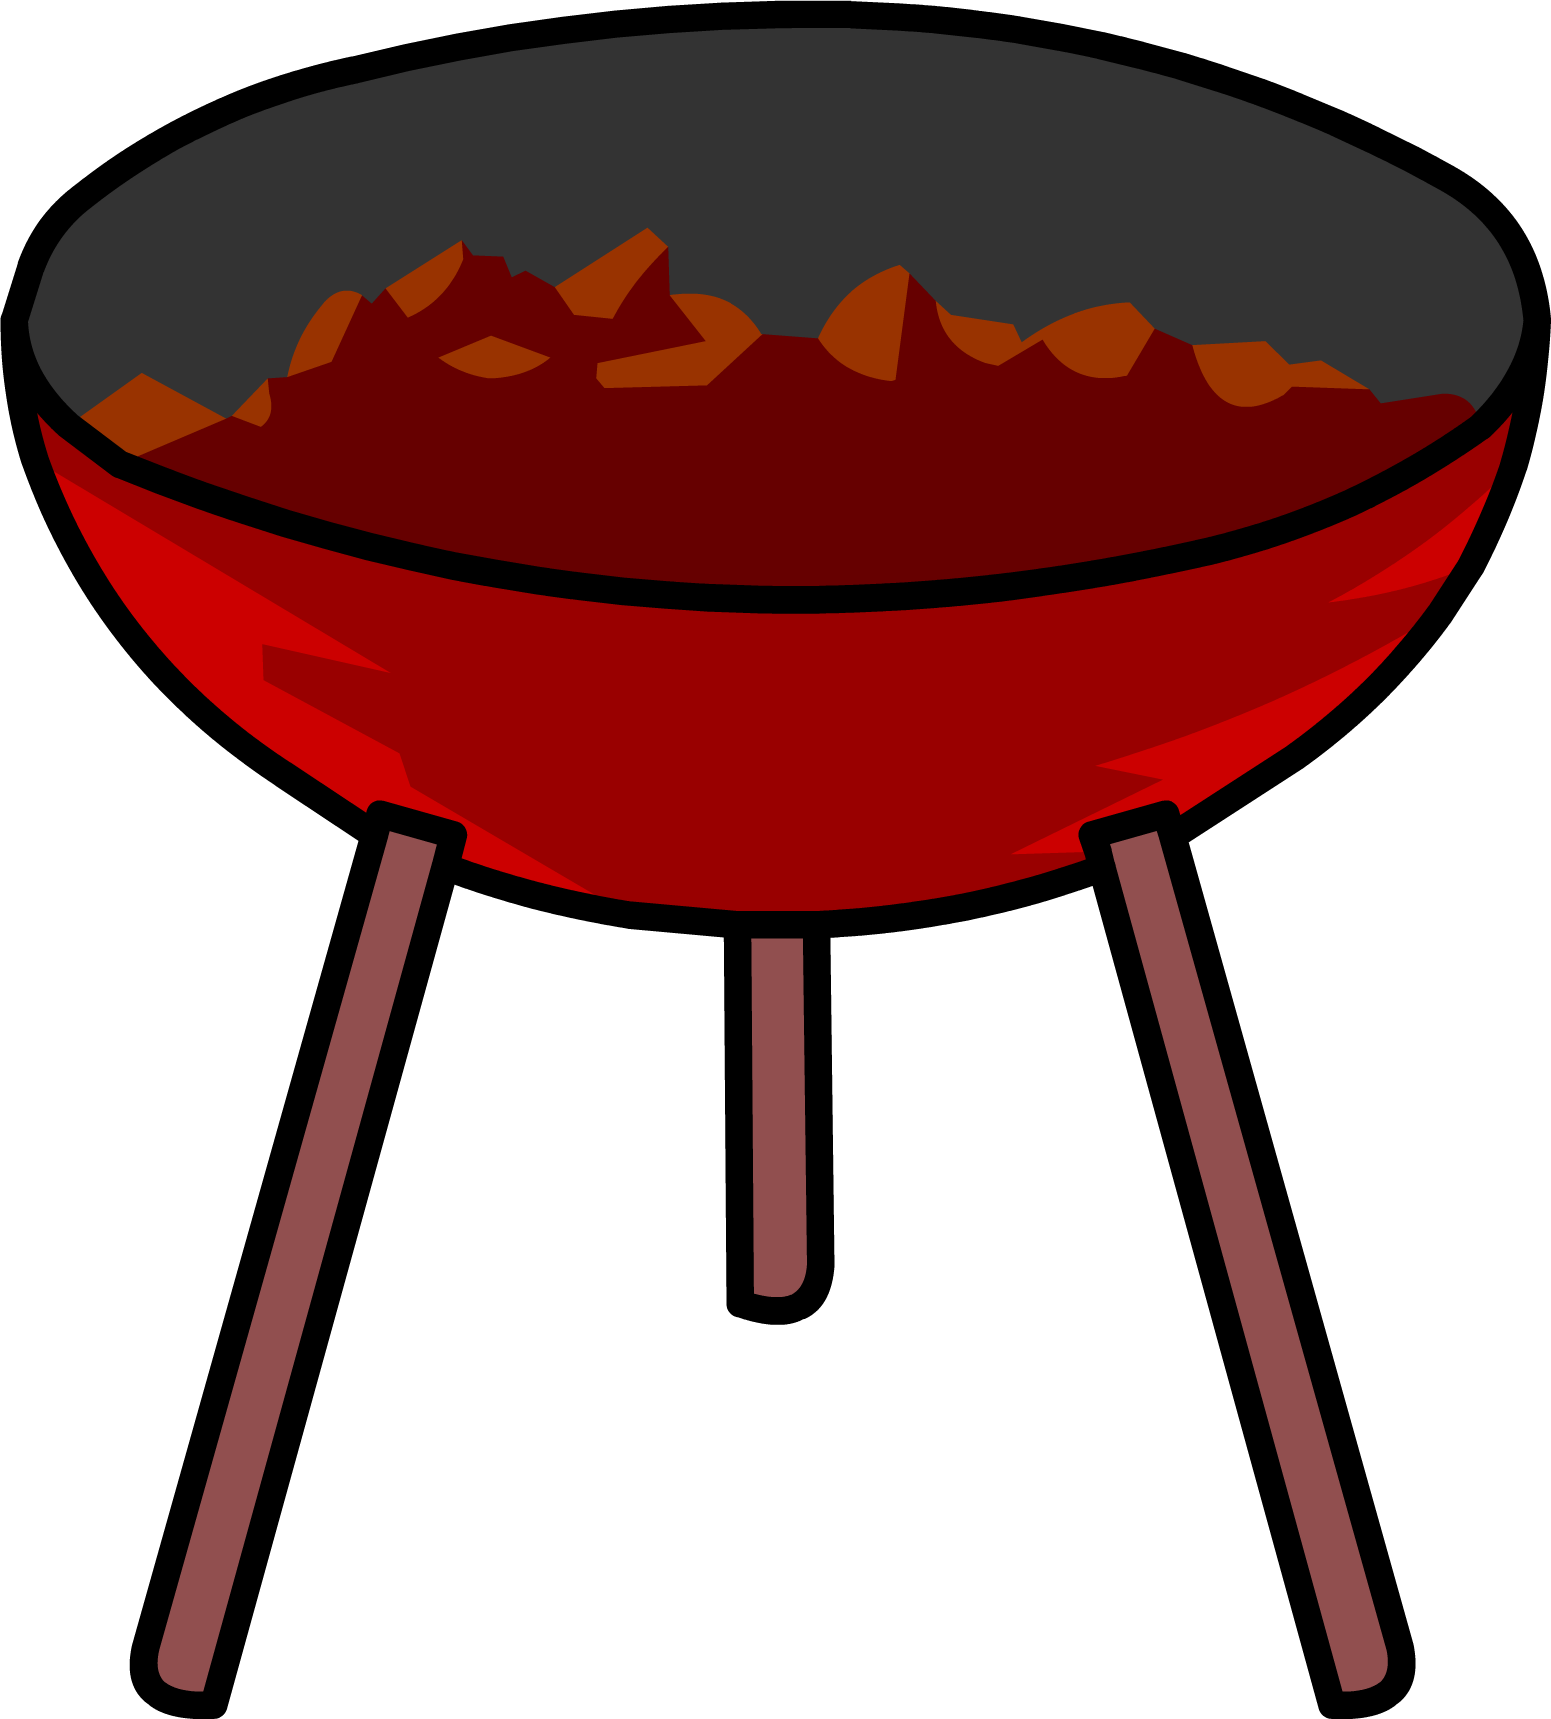 Barbecue png images free. Grilling clipart braai